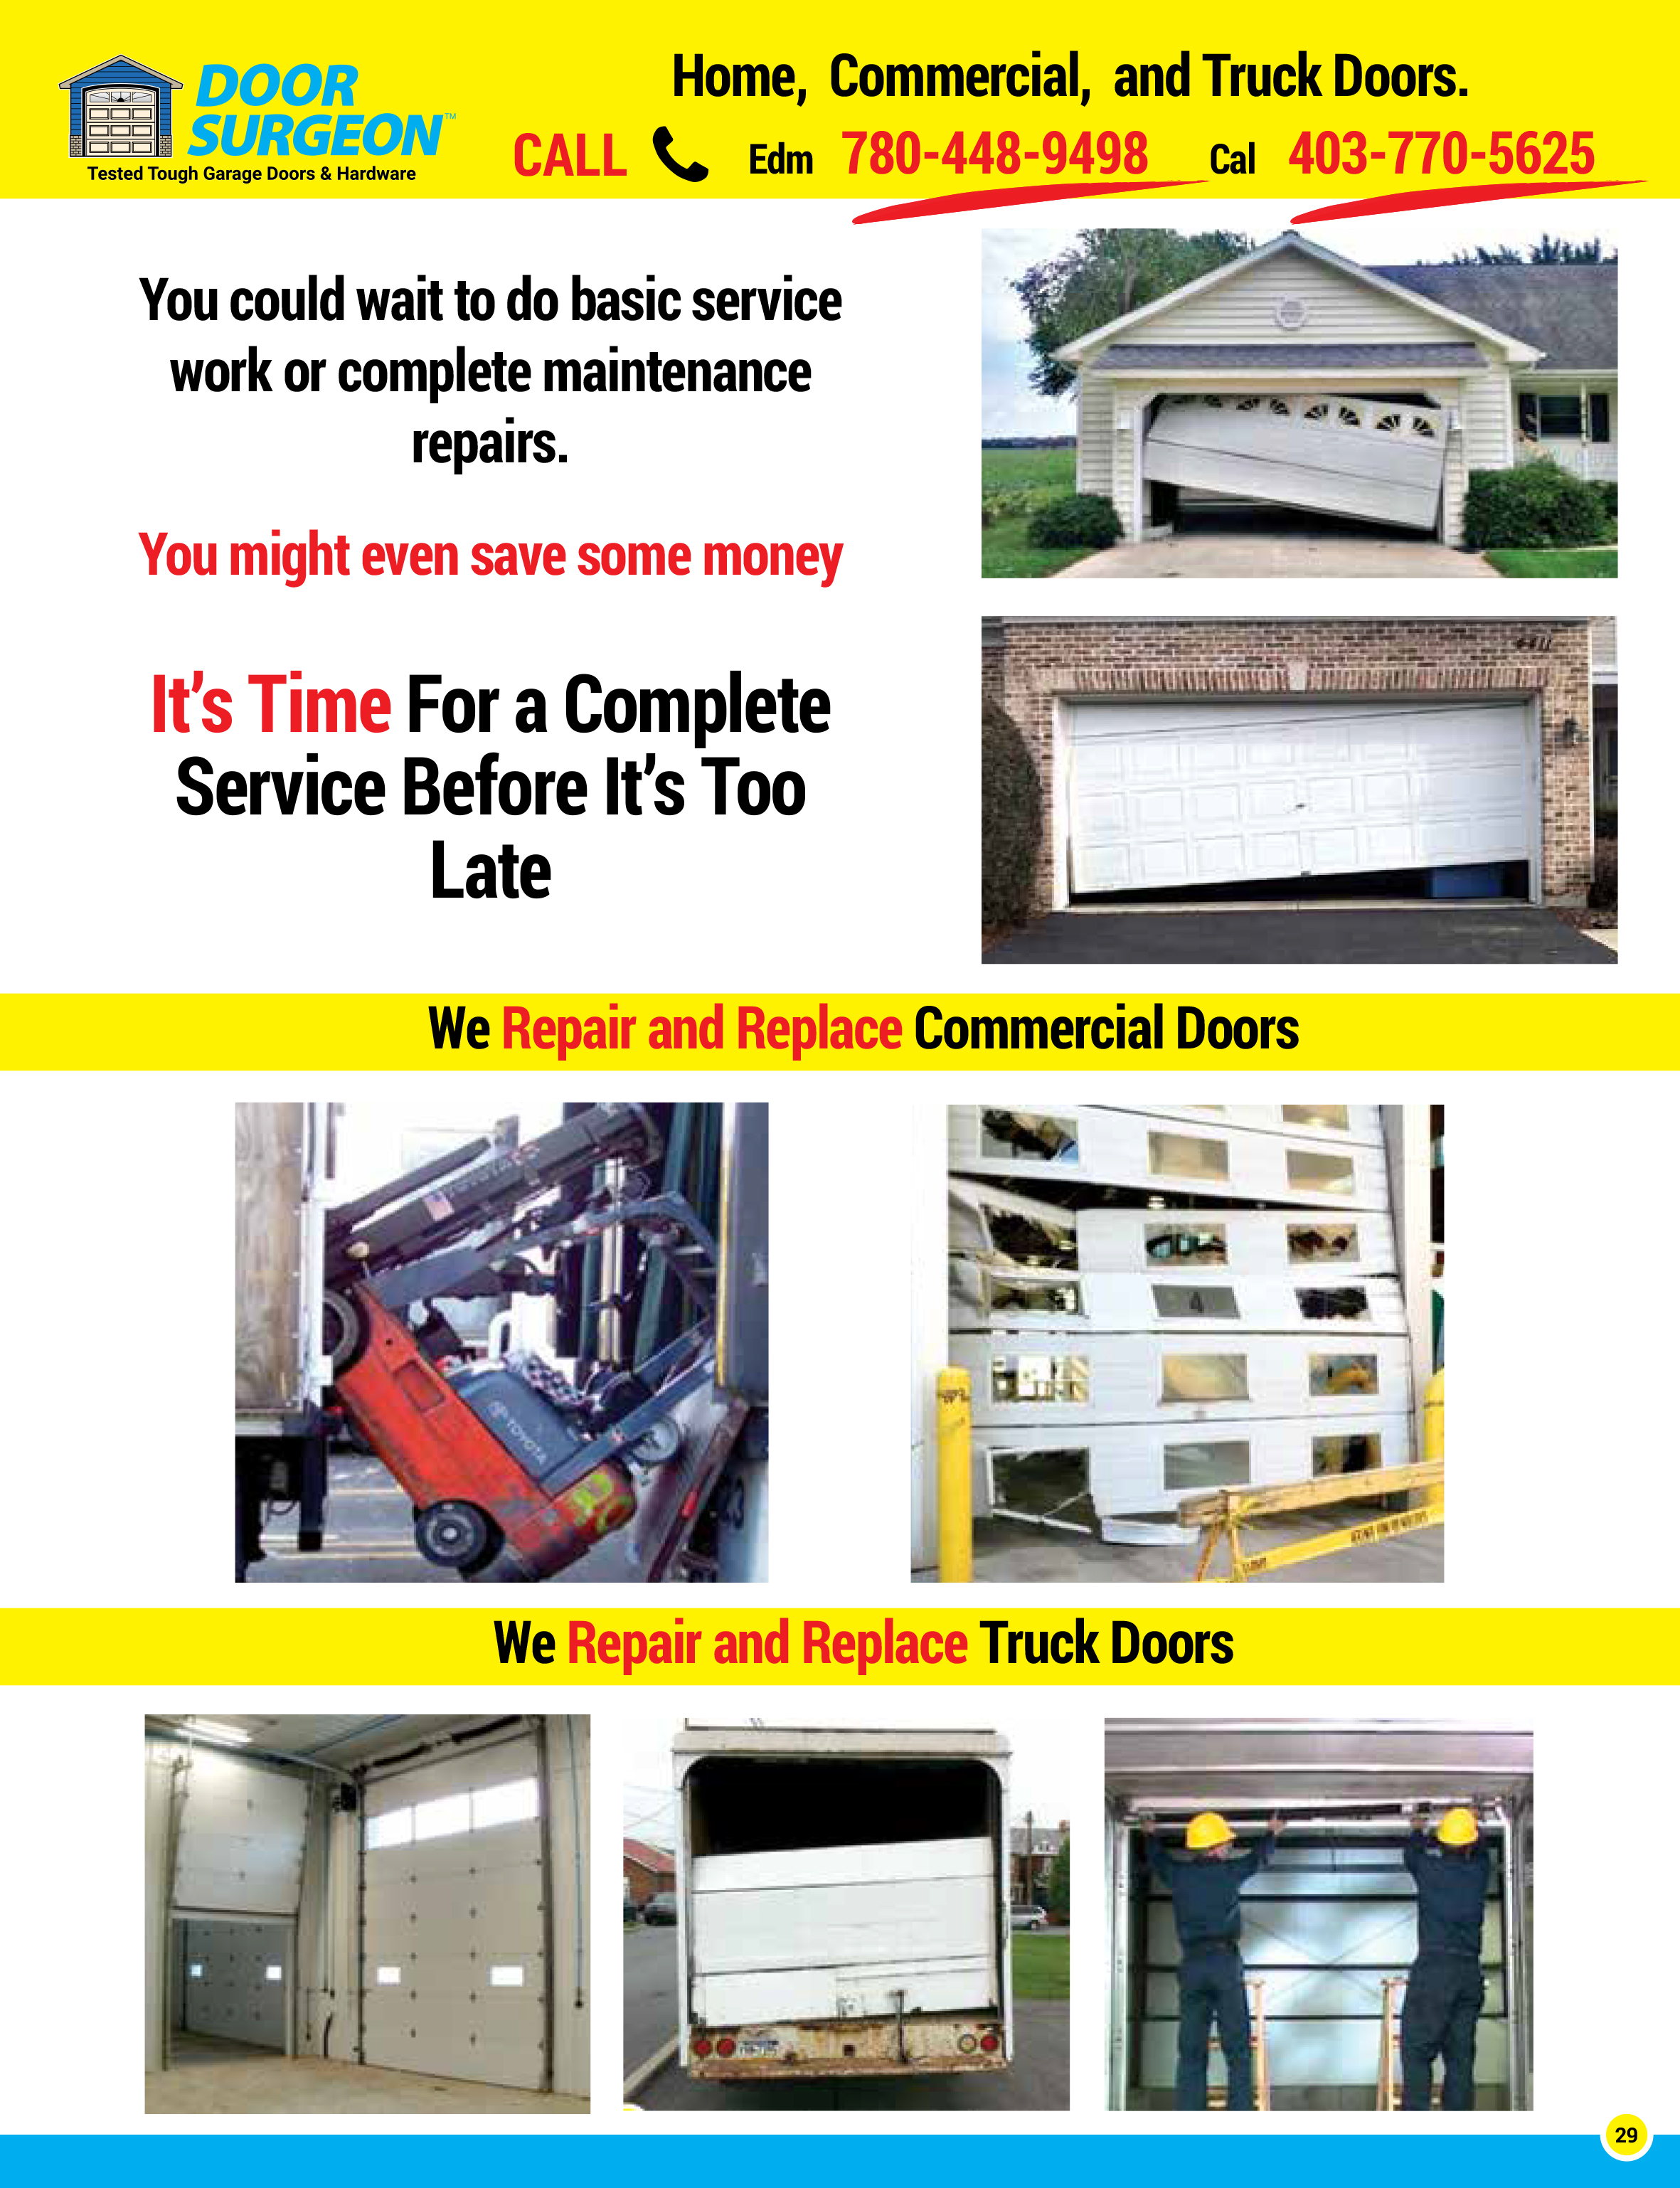 Garage door solutions for home, commercial, and trucks. Garage door repairs, replacement parts and new garage doors.